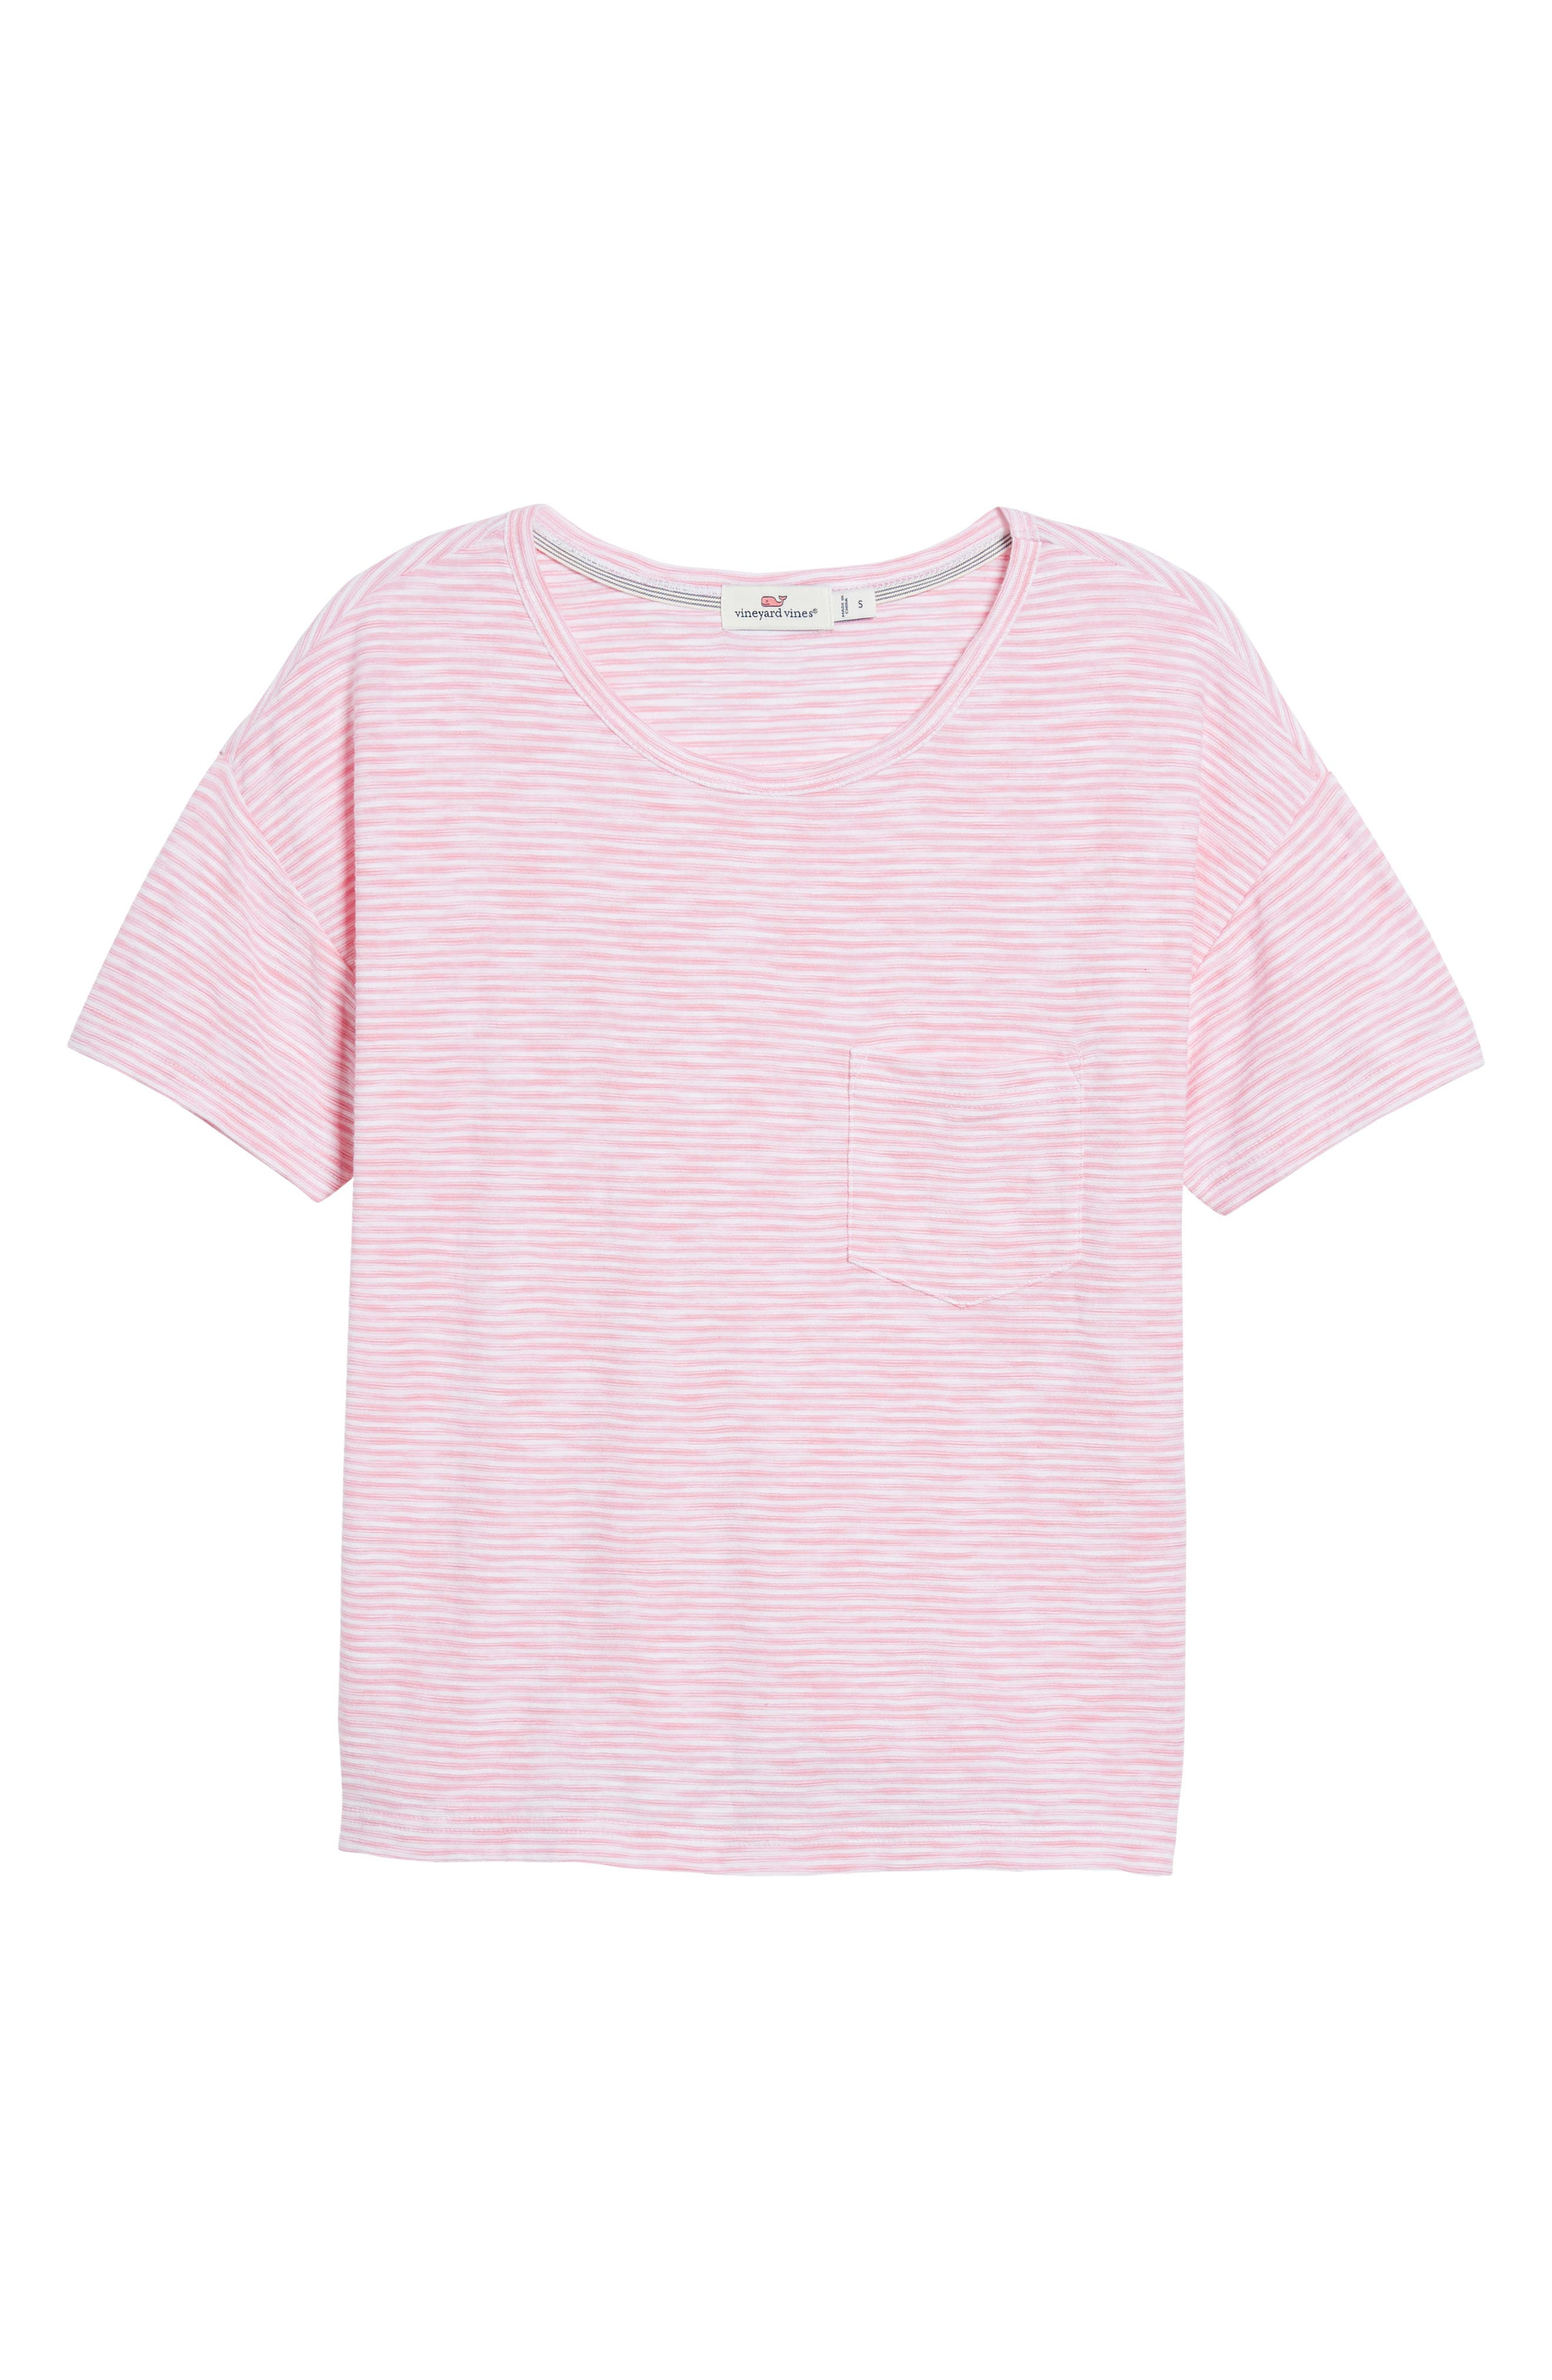 Striped Boxy Tee,                             Alternate thumbnail 6, color,                             654